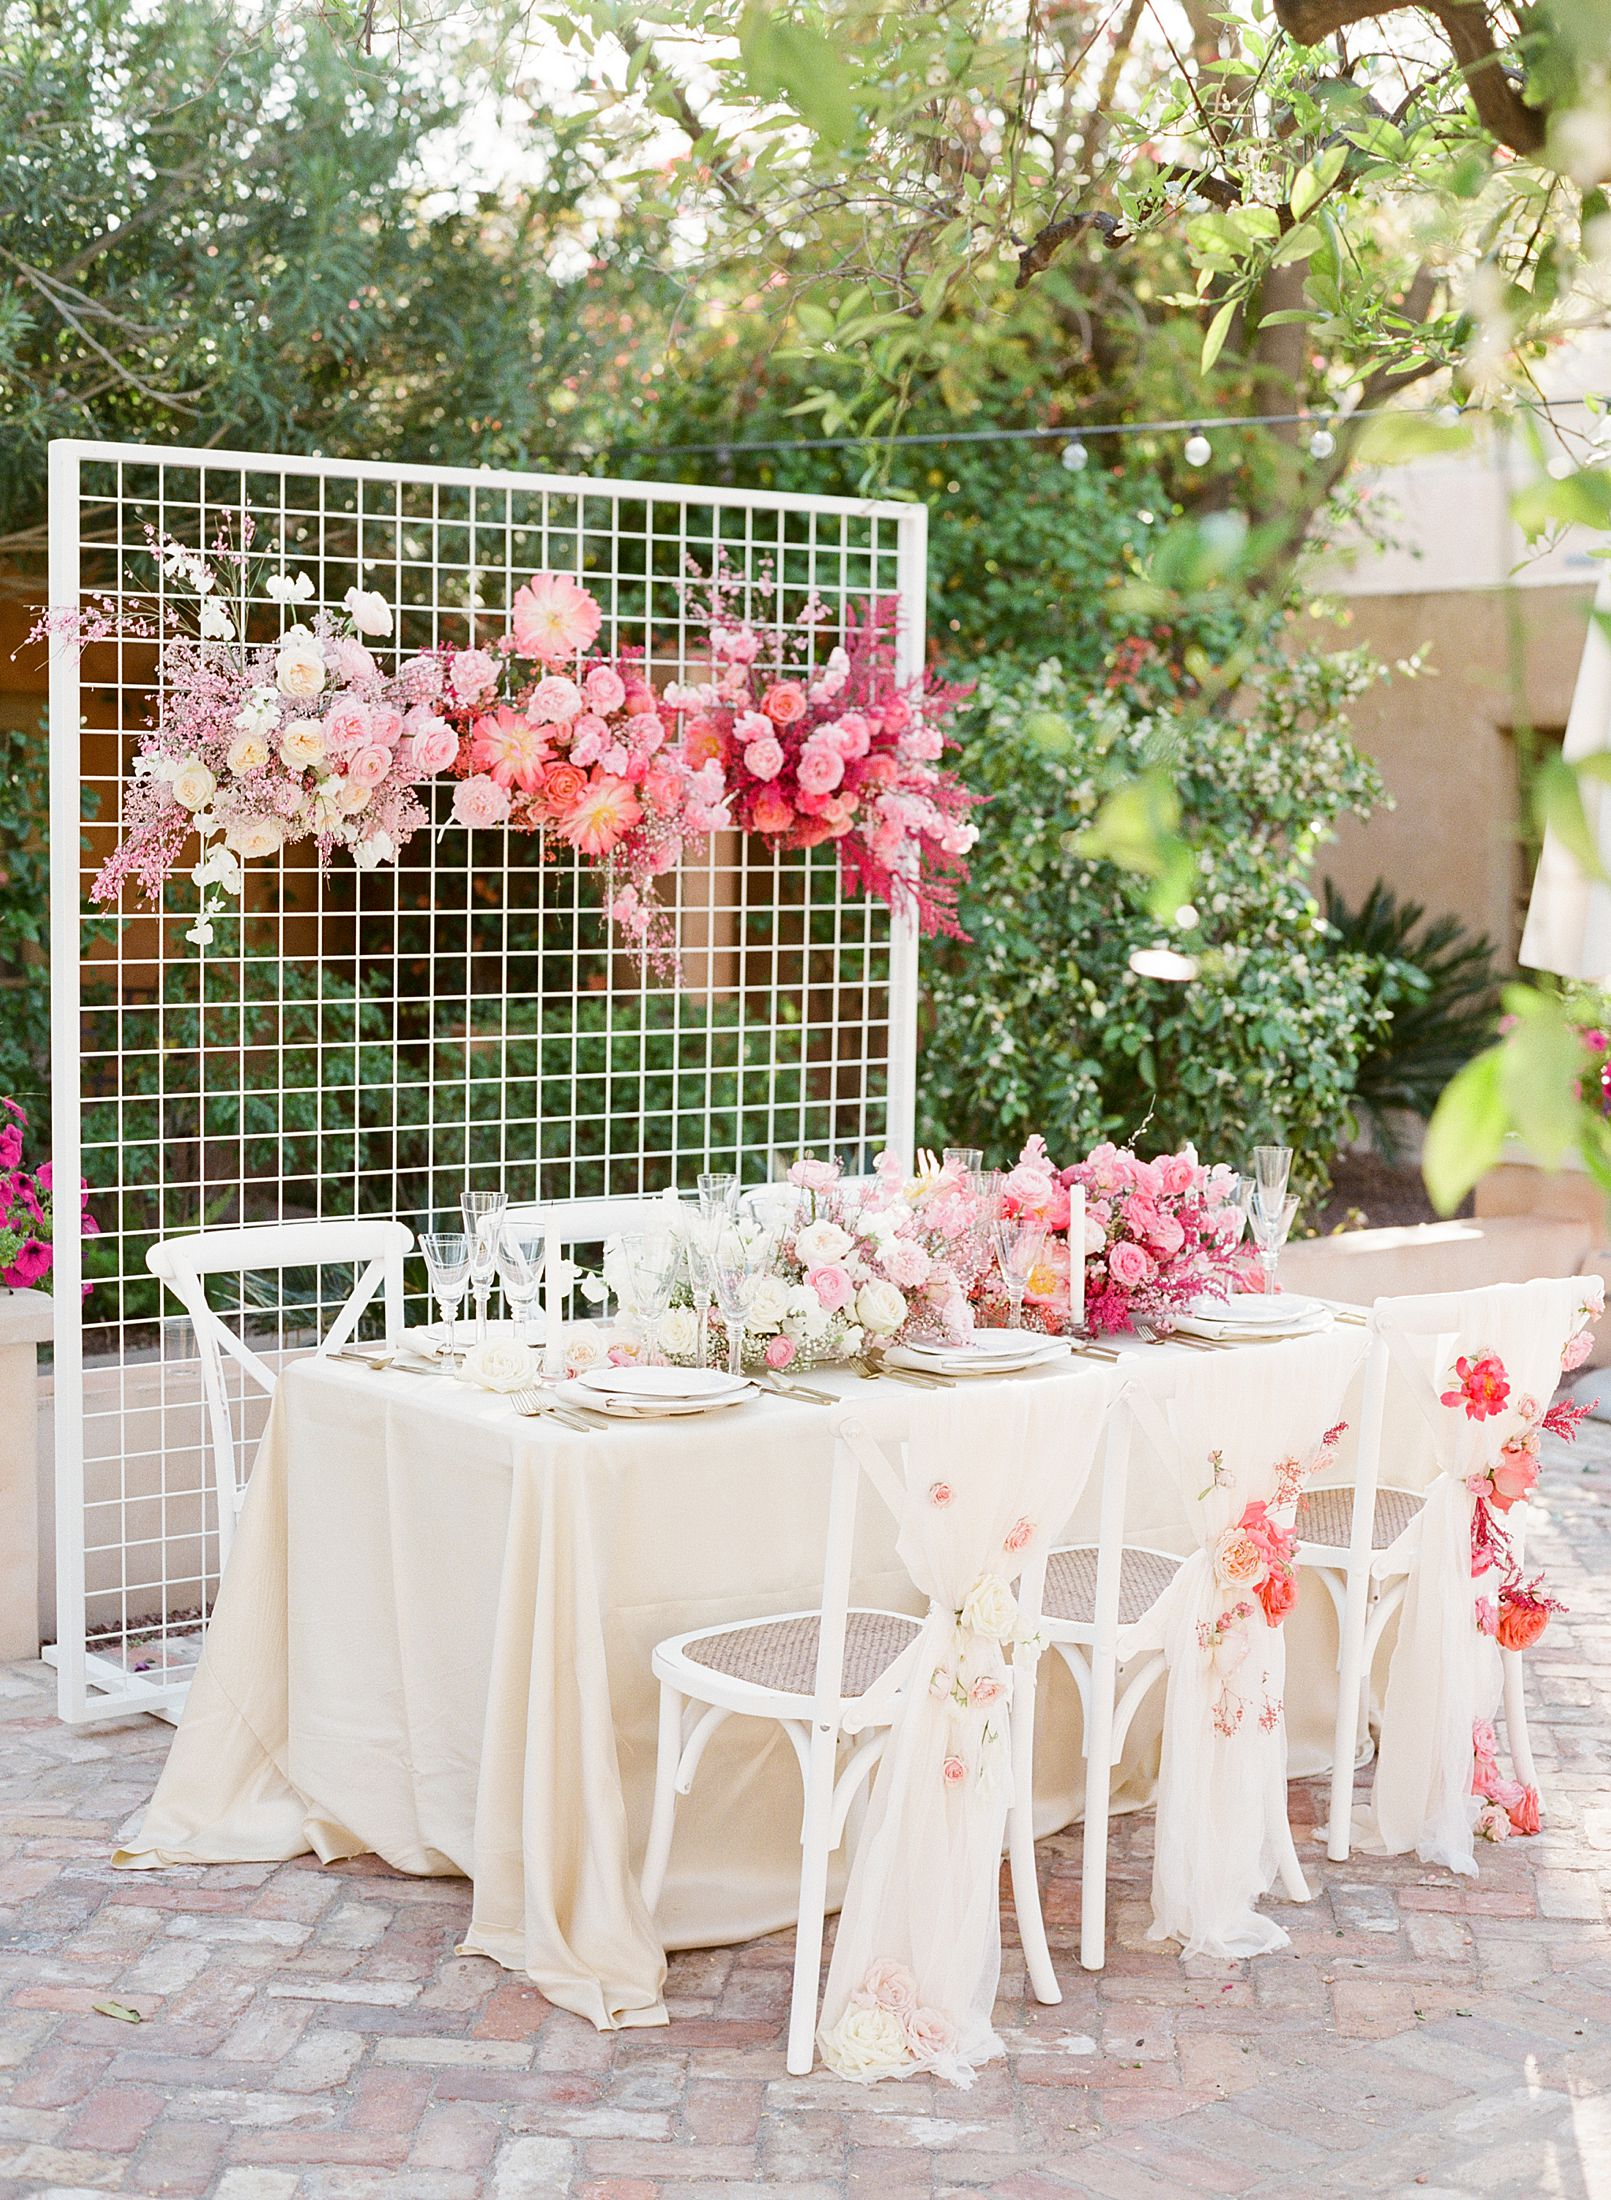 Pink Ombre Wedding Inspiration on Style Me Pretty - Royal Palms Wedding - Scottsdale Wedding - Ashley Baumgartner - Bloom and Blueprint - Wedding Puppies - Bulldog Puppies_0043.jpg